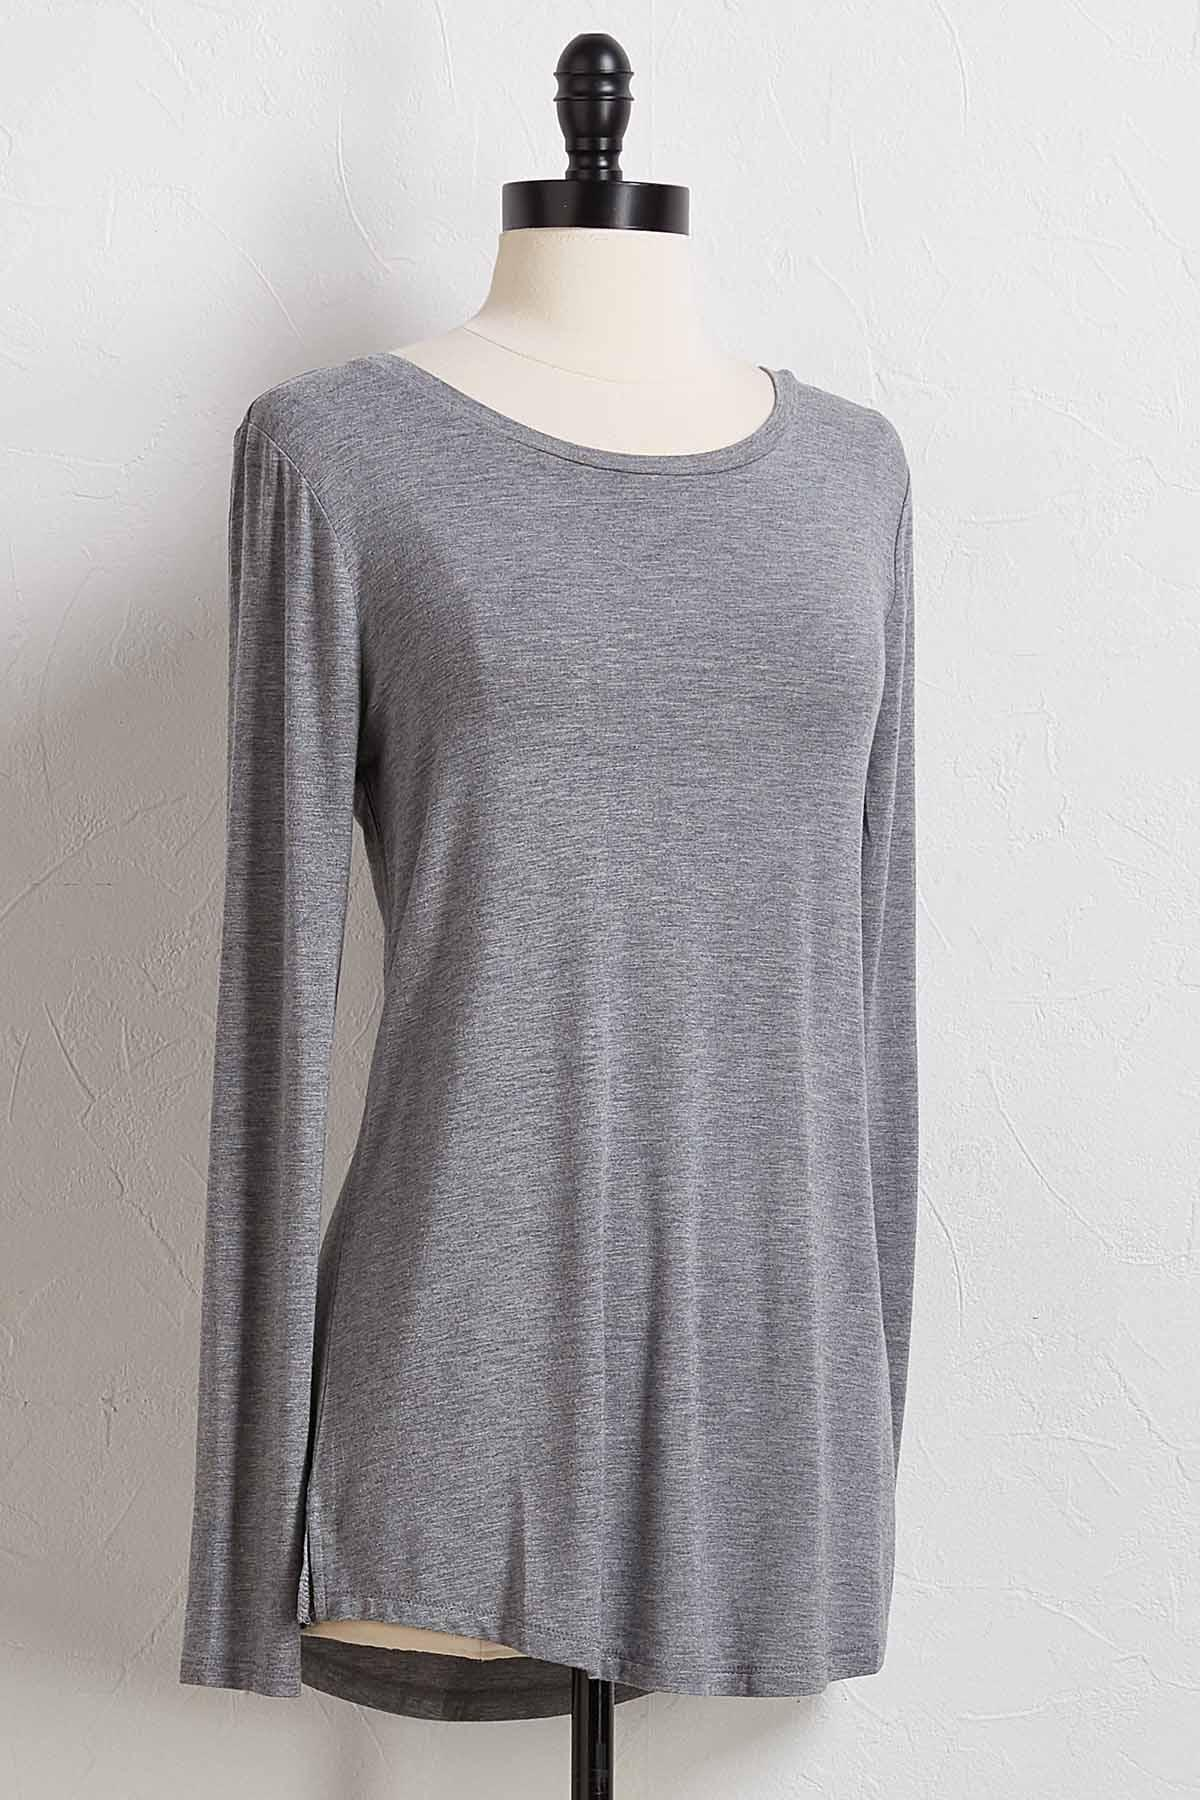 MEDIUM_GRAY_HEATHER